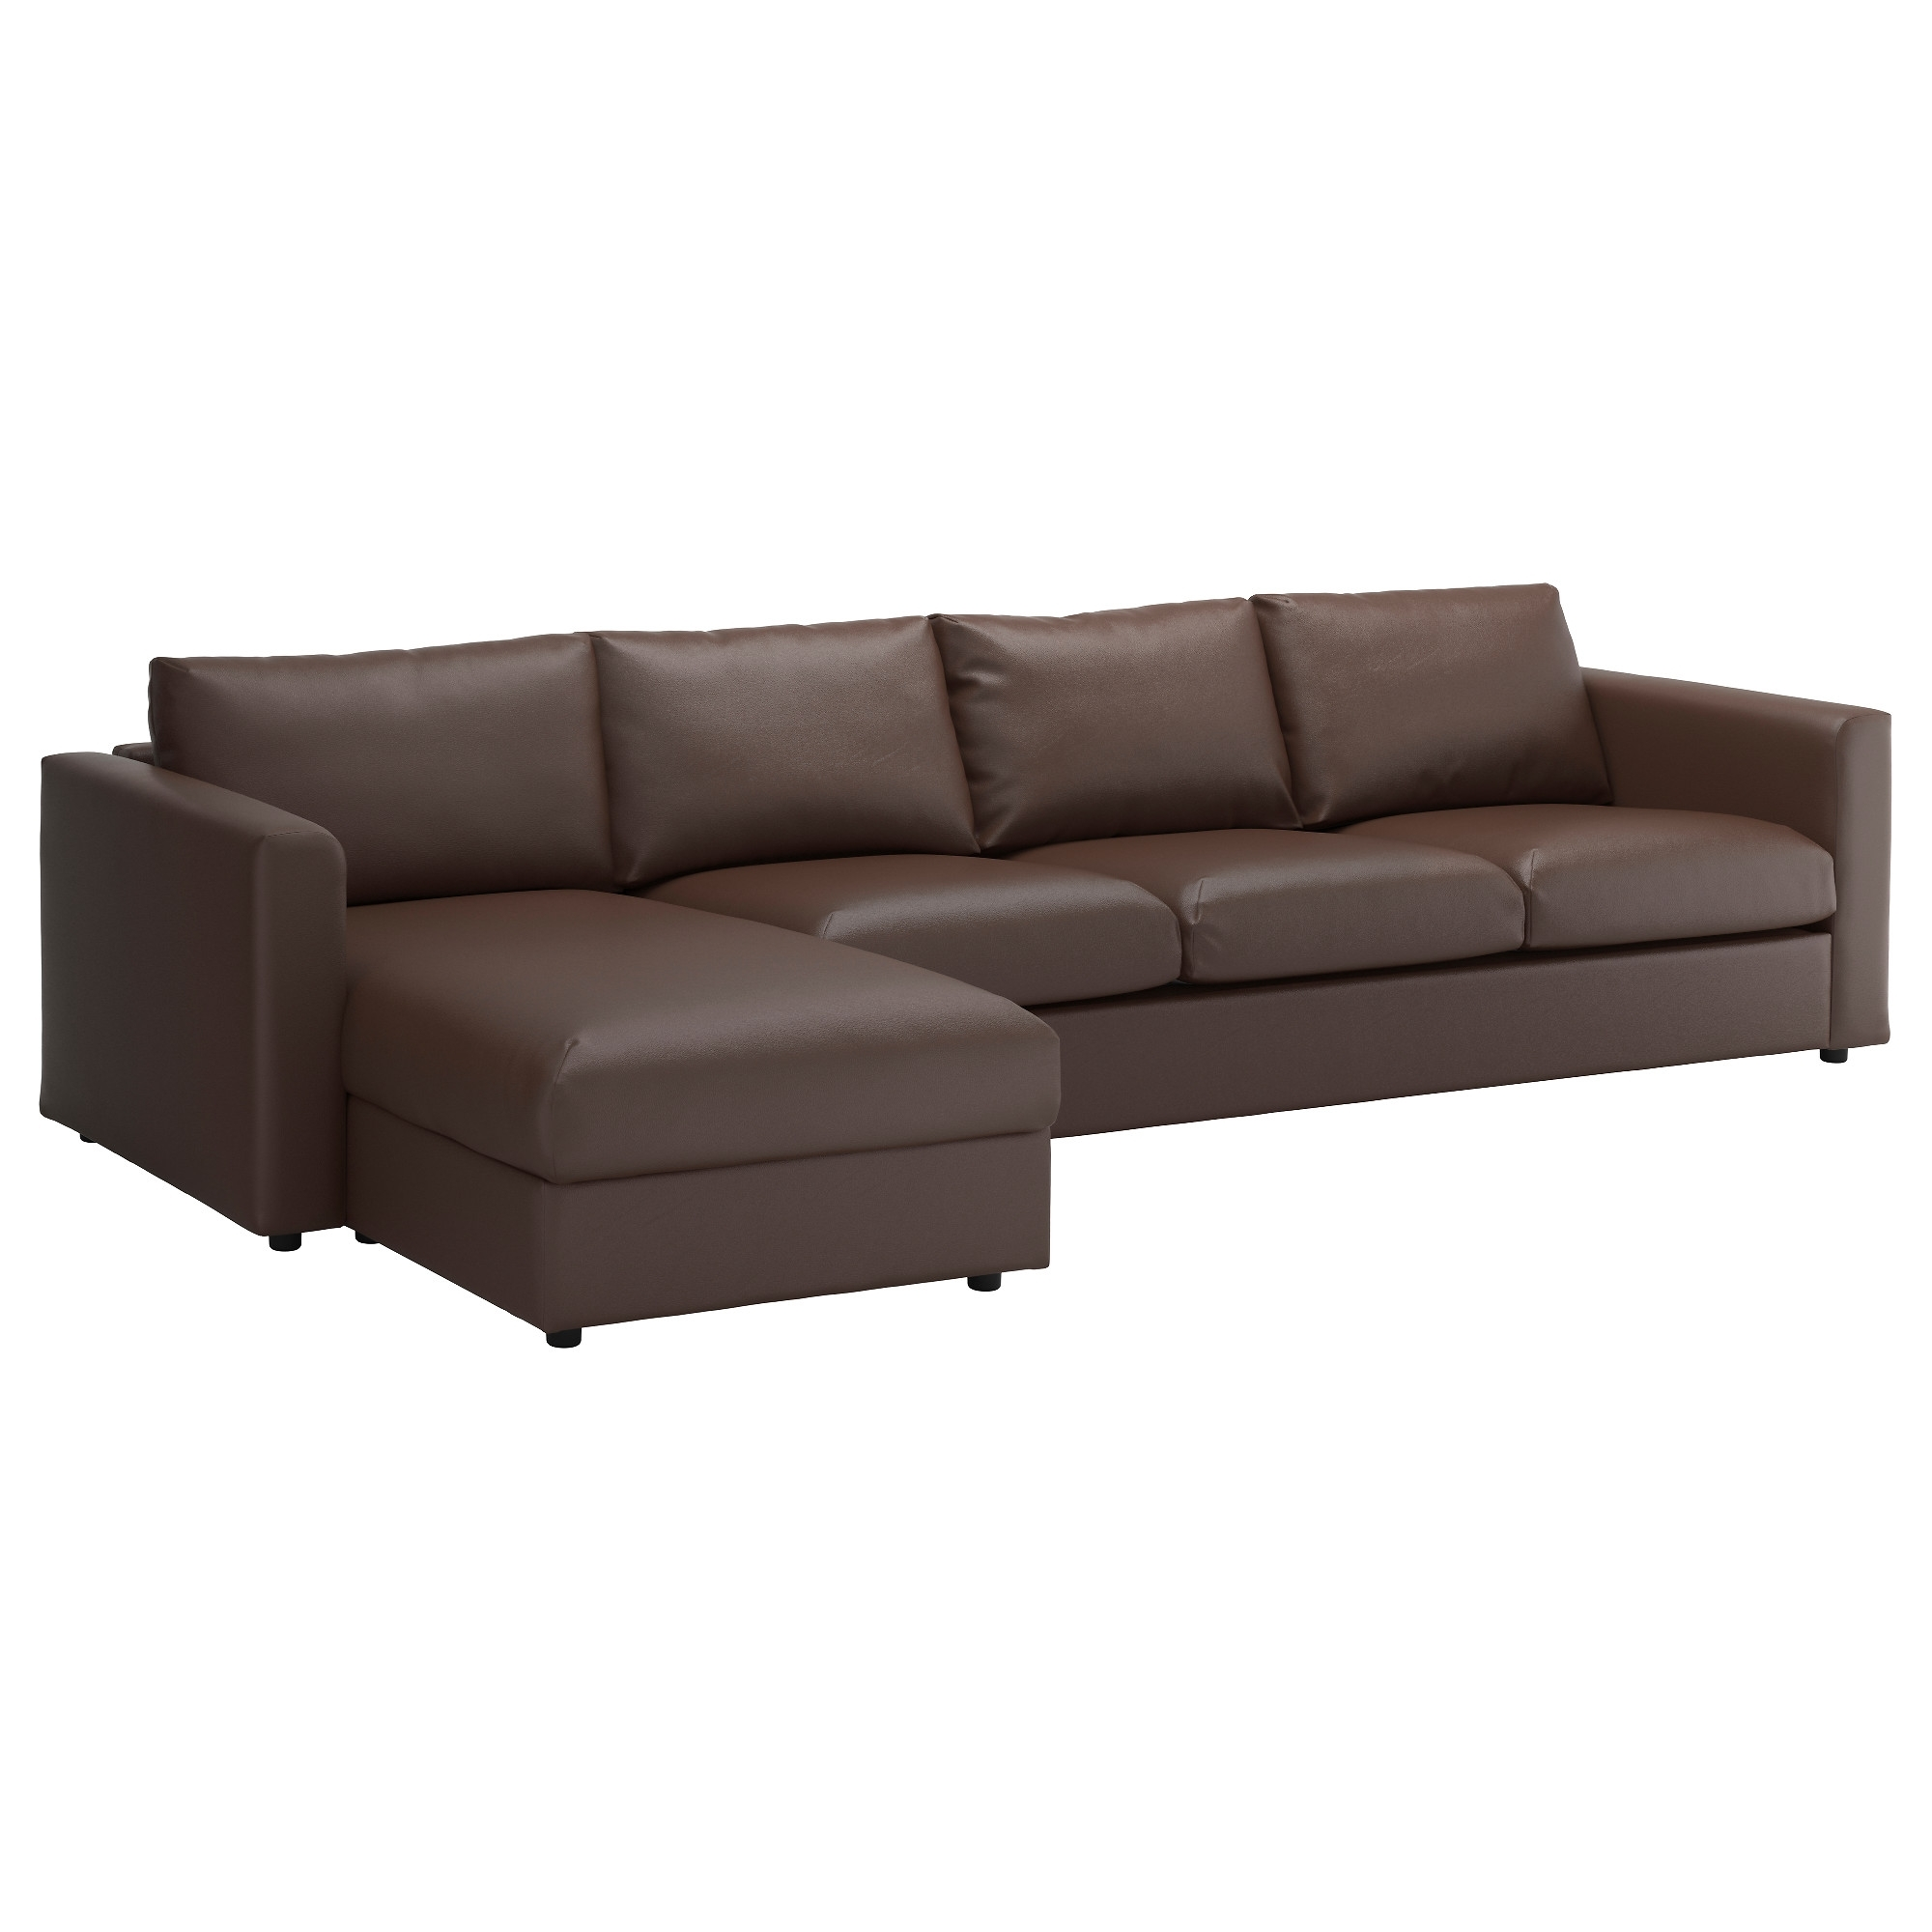 4 Seat Leather Sofas In Trendy Vimle Sectional, 4 Seat – With Chaise/farsta Black – Ikea (View 14 of 20)